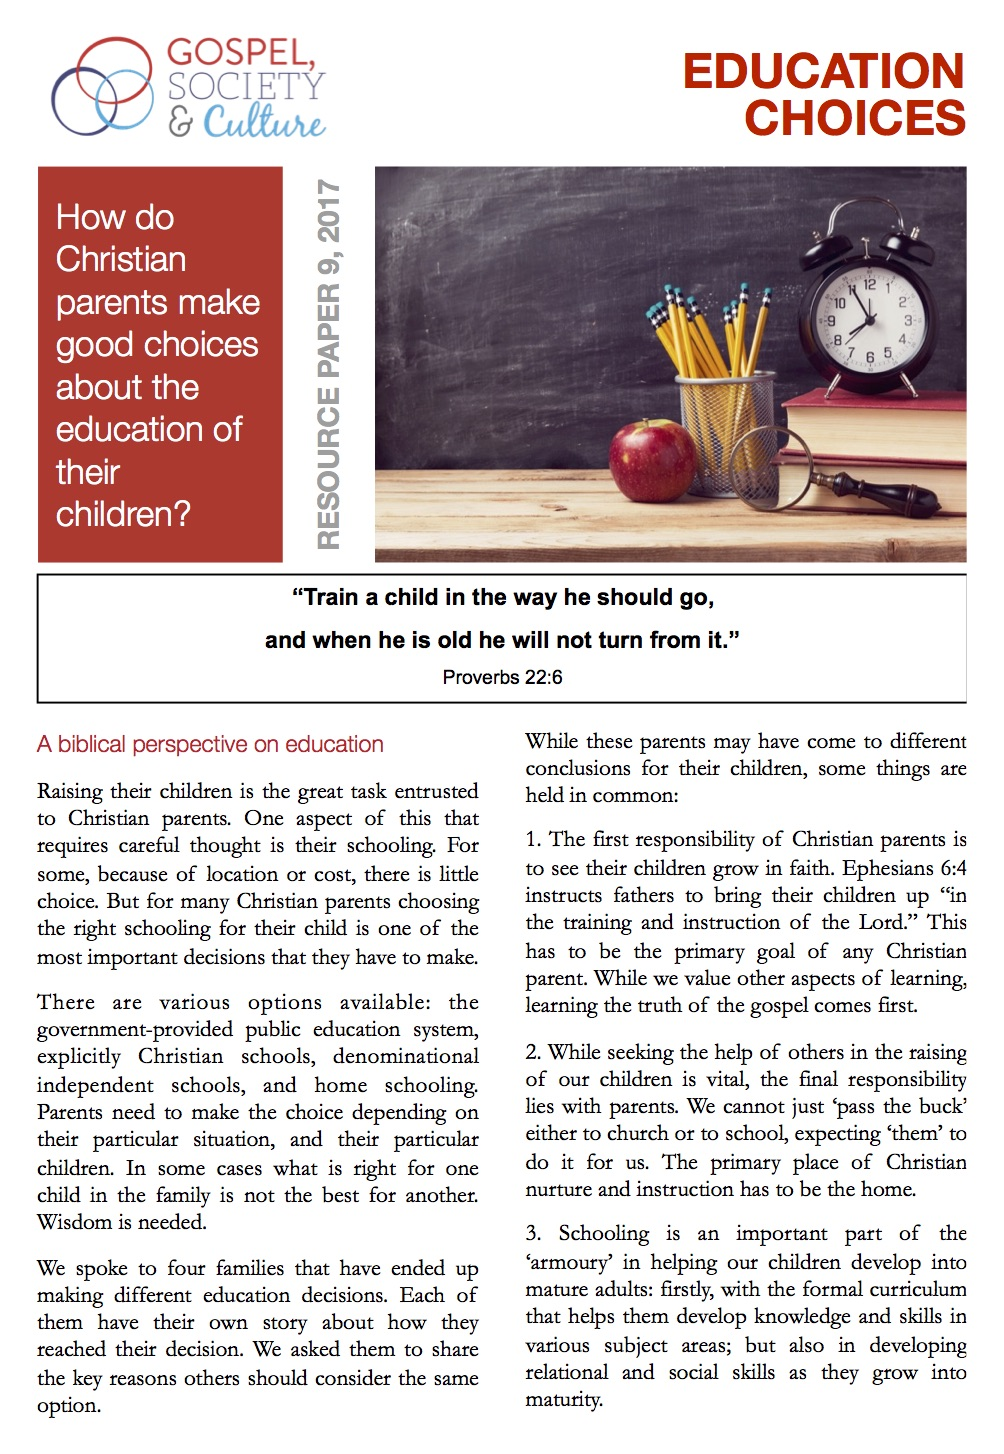 http://gsandc.org.au/wp-content/uploads/2016/05/Education-Choices-pic.jpg